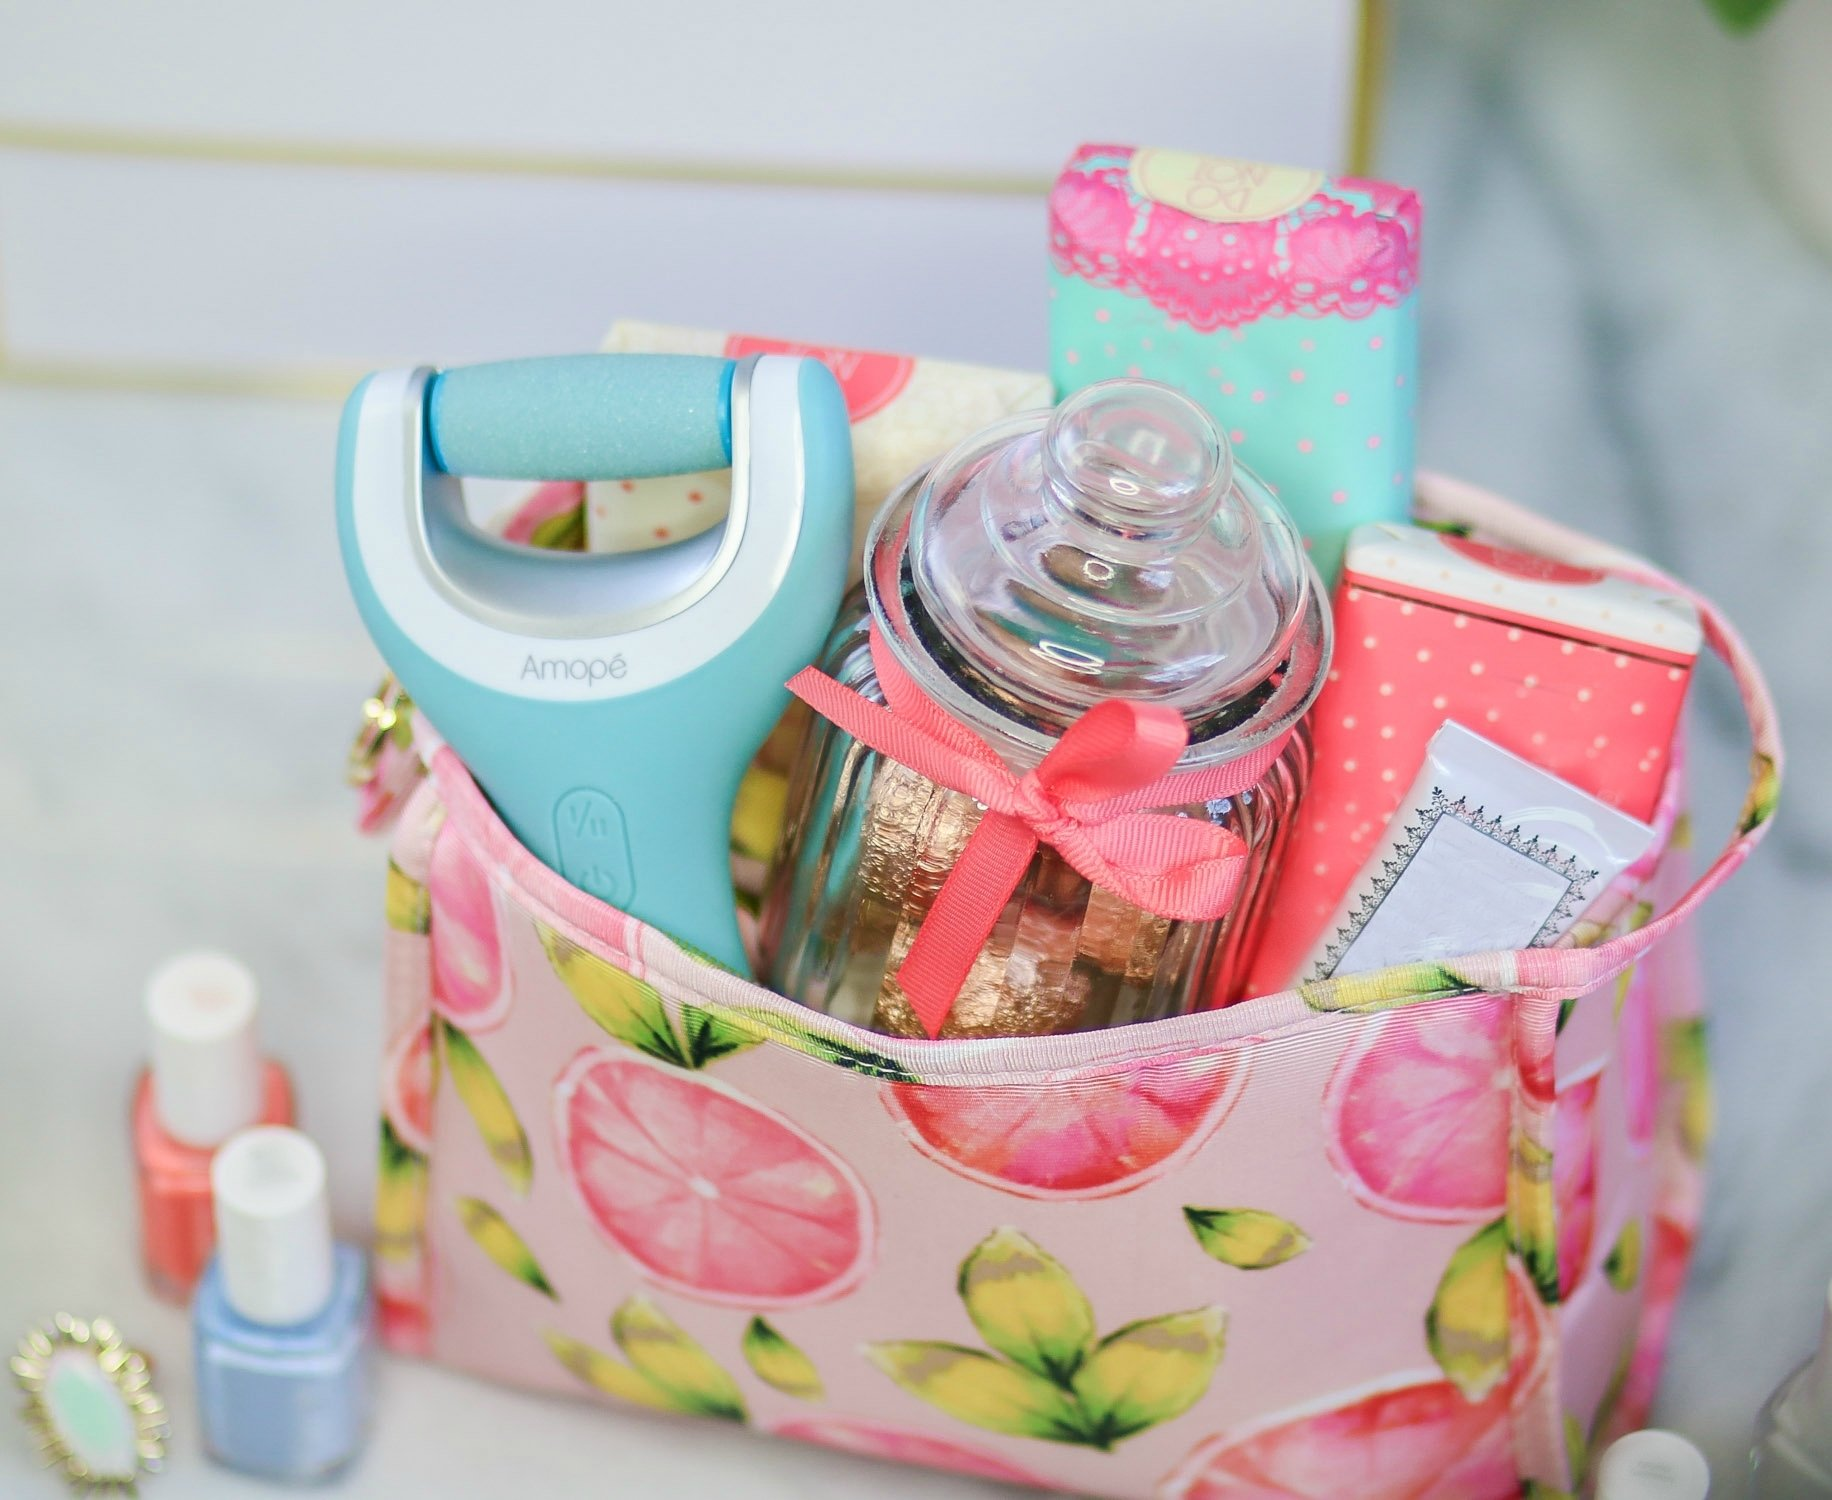 10 Most Recommended Cute Gift Ideas For Friends cute gift ideas for your friends ashley brooke nicholas 2021